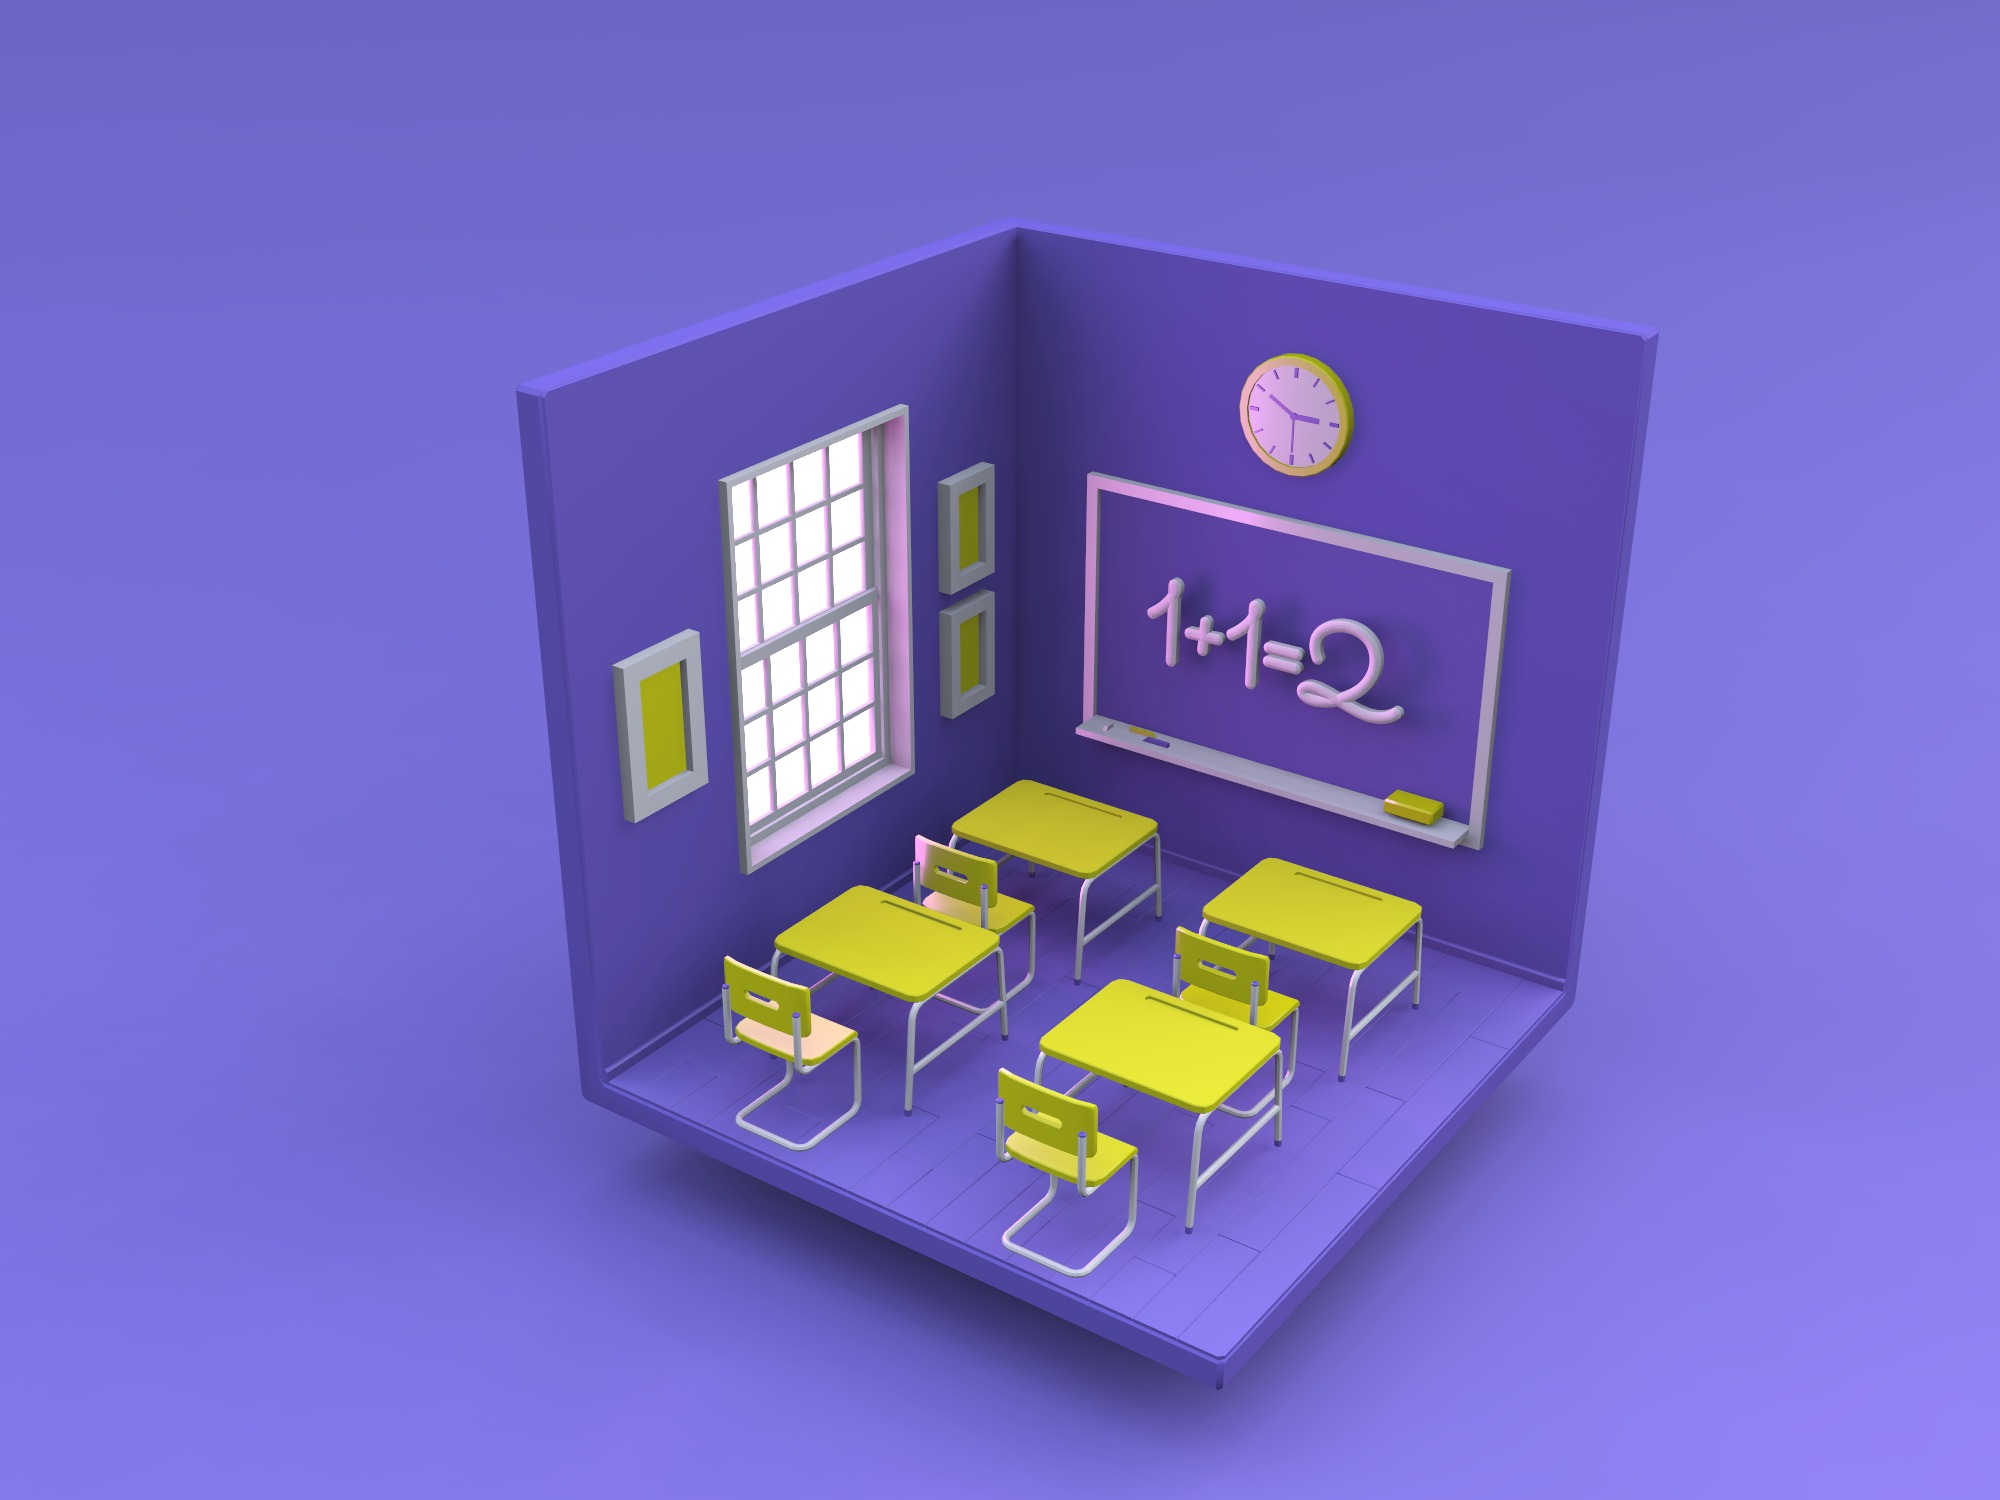 Isometric classroom - change the color and materials (copy) - 3D design by Min T K Jun 28, 2018